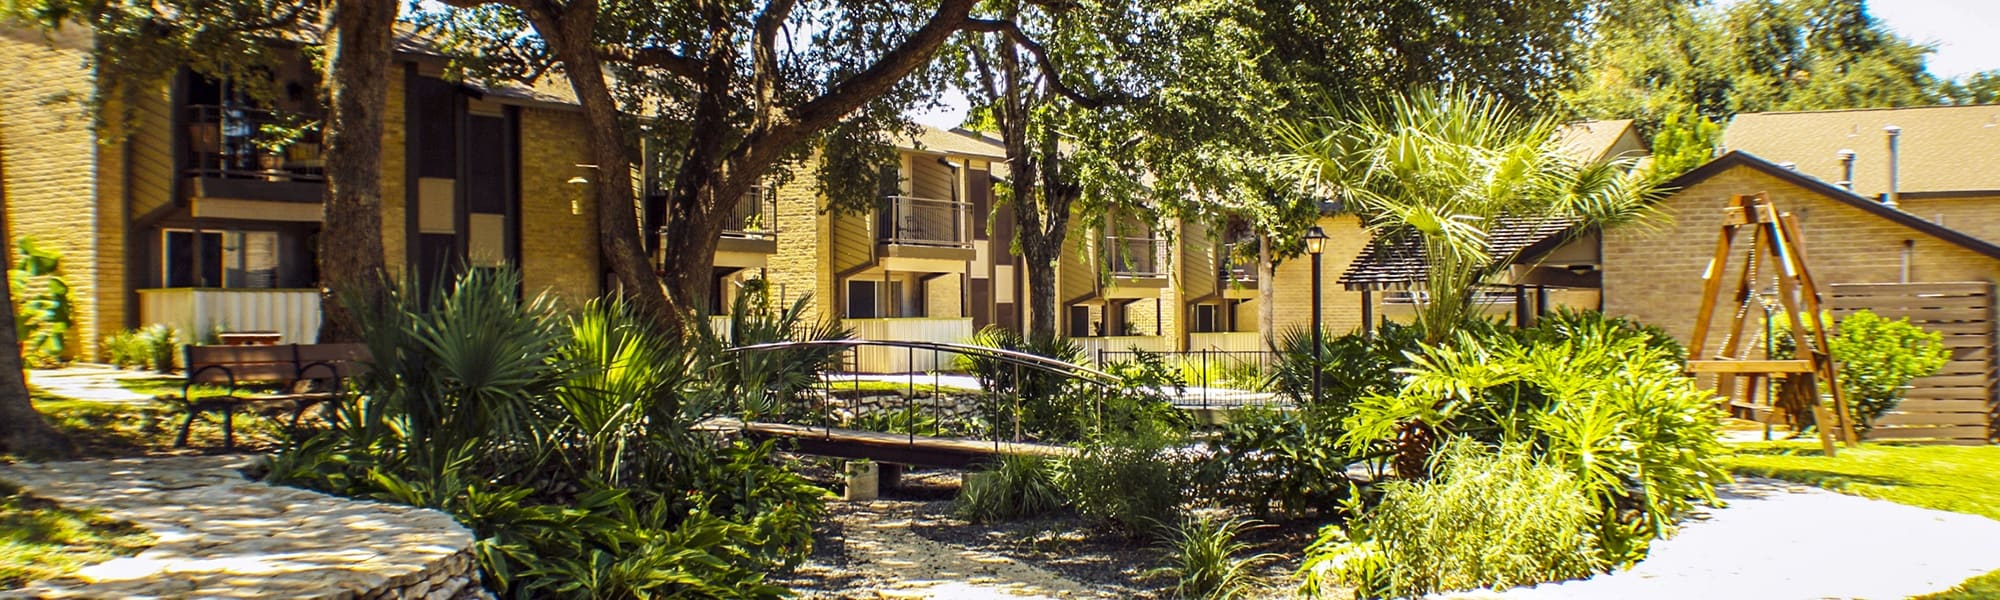 View the wonderful photos of the apartment facility in Austin